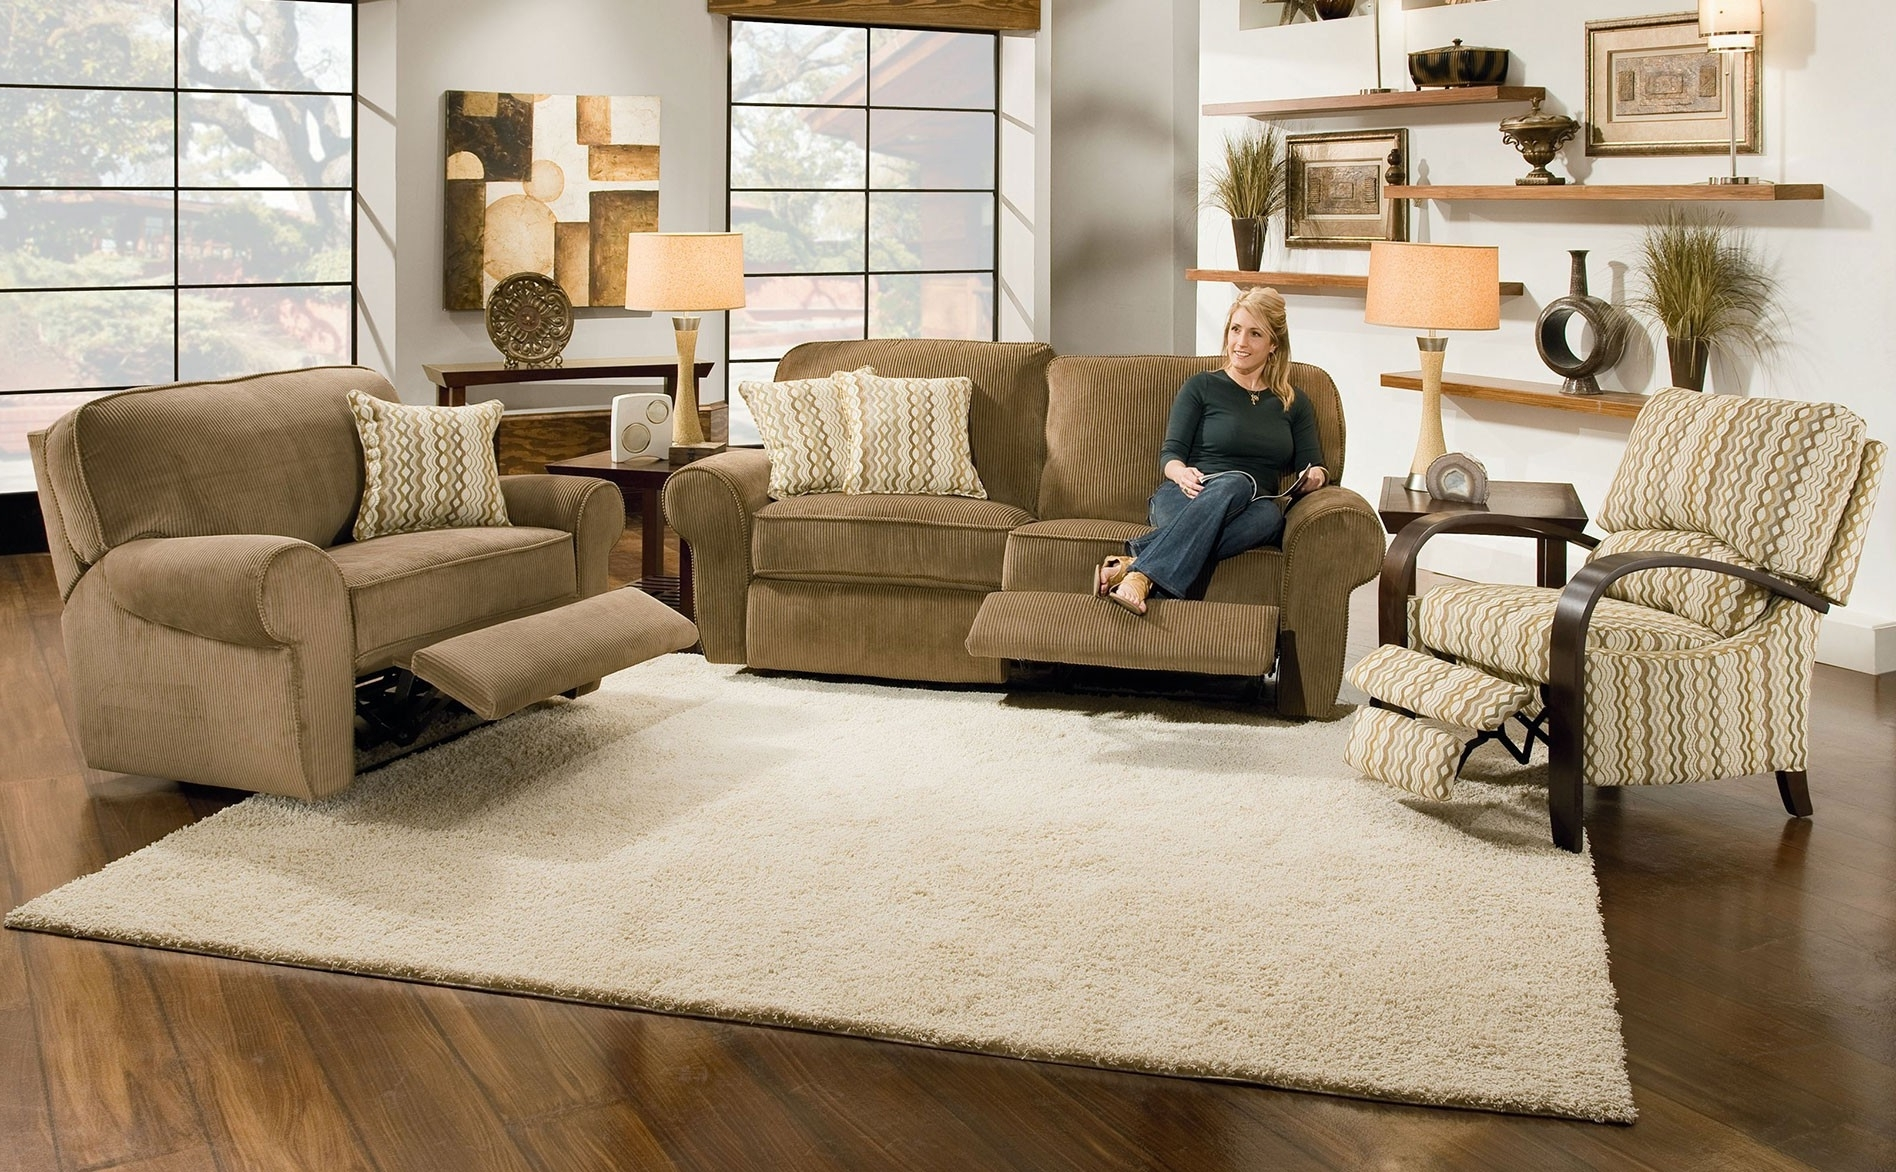 Lane Furniture Sofas For Widely Used Great Lane Reclining Sofa 49 On Sofa Design Ideas With Lane (View 20 of 20)